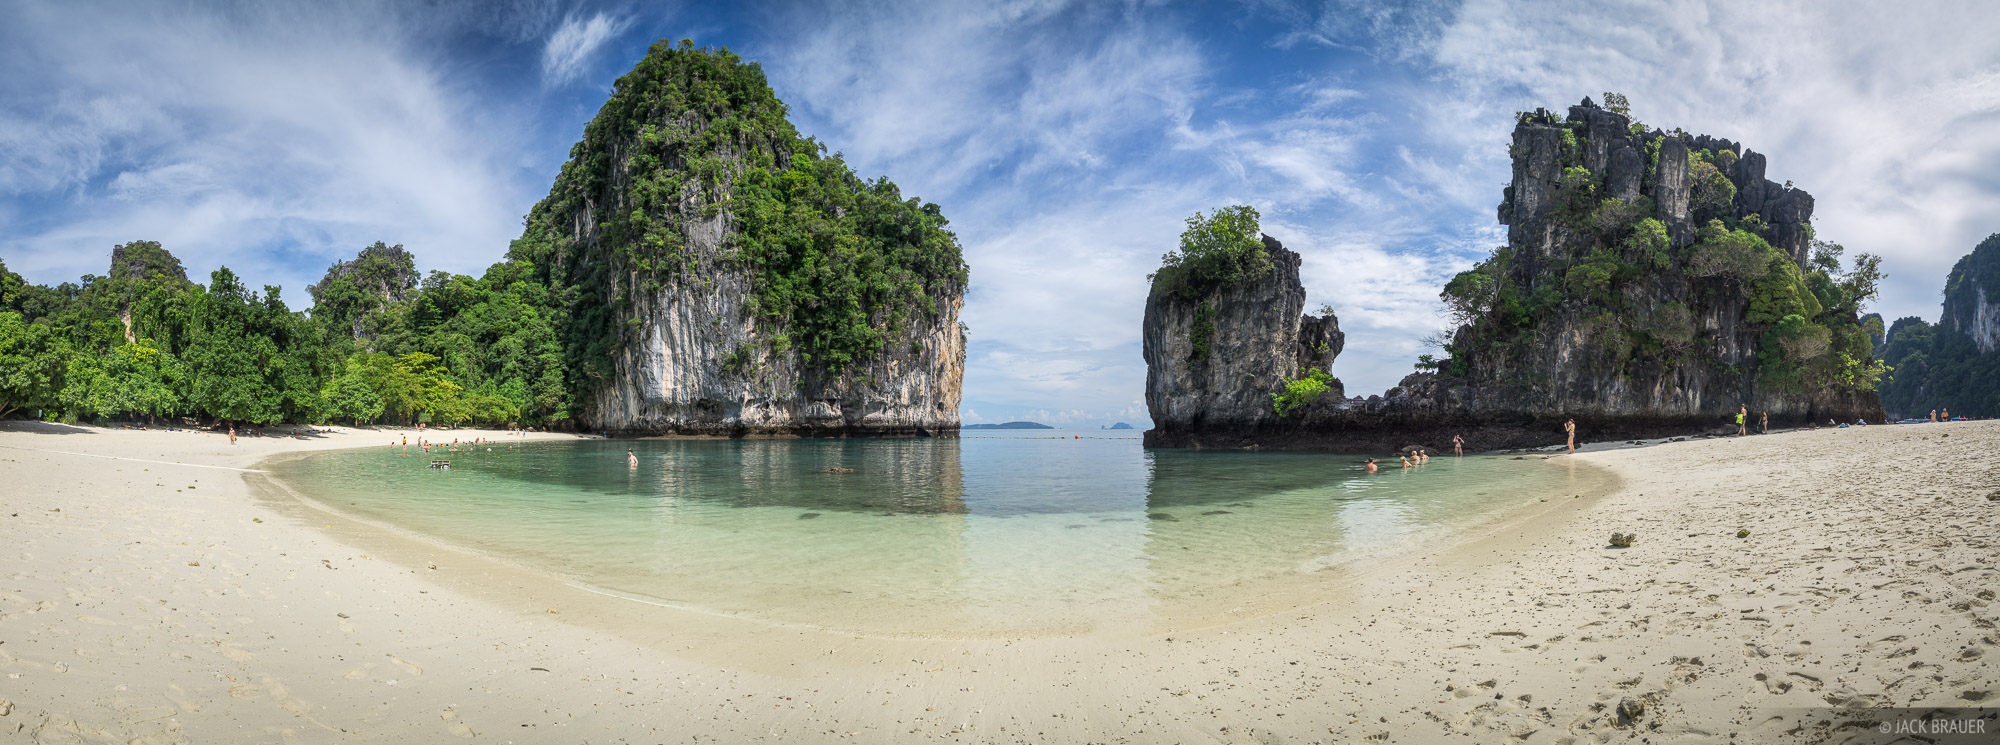 Ko Hong, Thailand, Andaman Sea, beach, panorama, photo